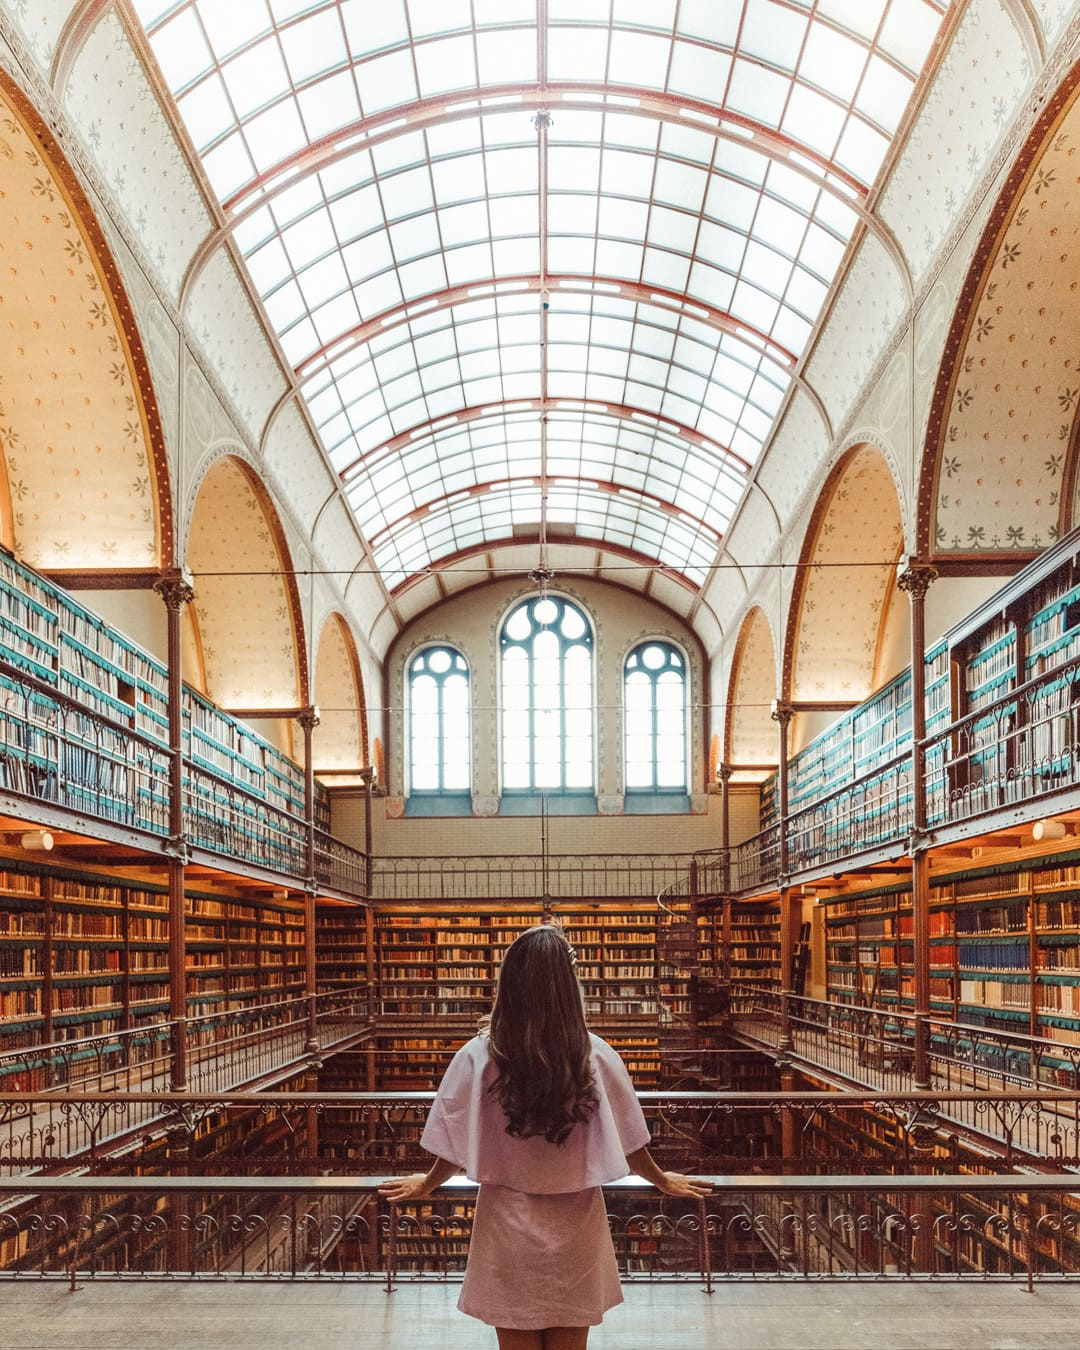 Inside the Rijksmuseum library, one of the most Instagrammable places in Amsterdam